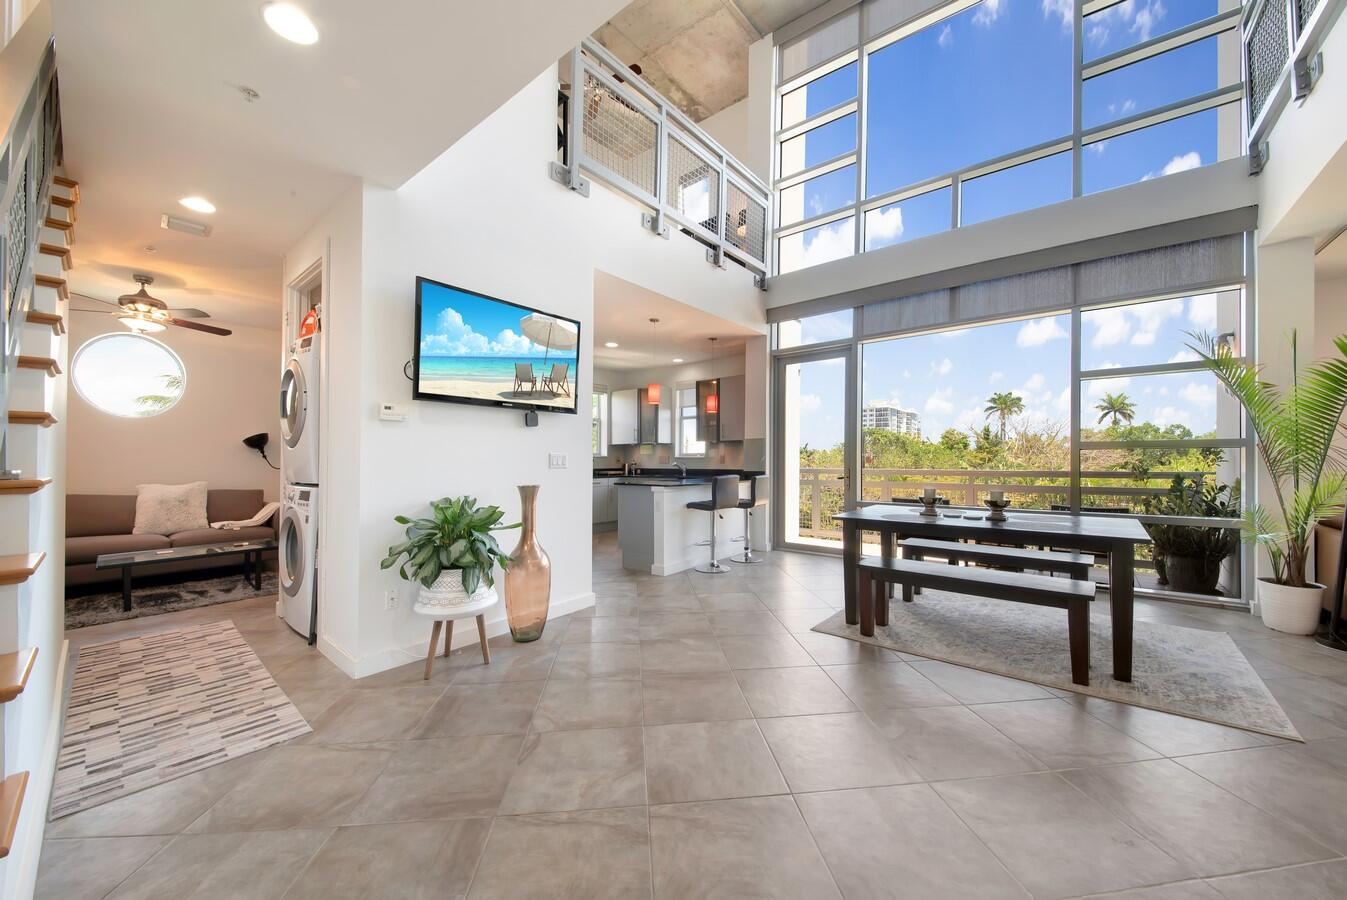 Home for sale in Meridian Delray Beach Florida